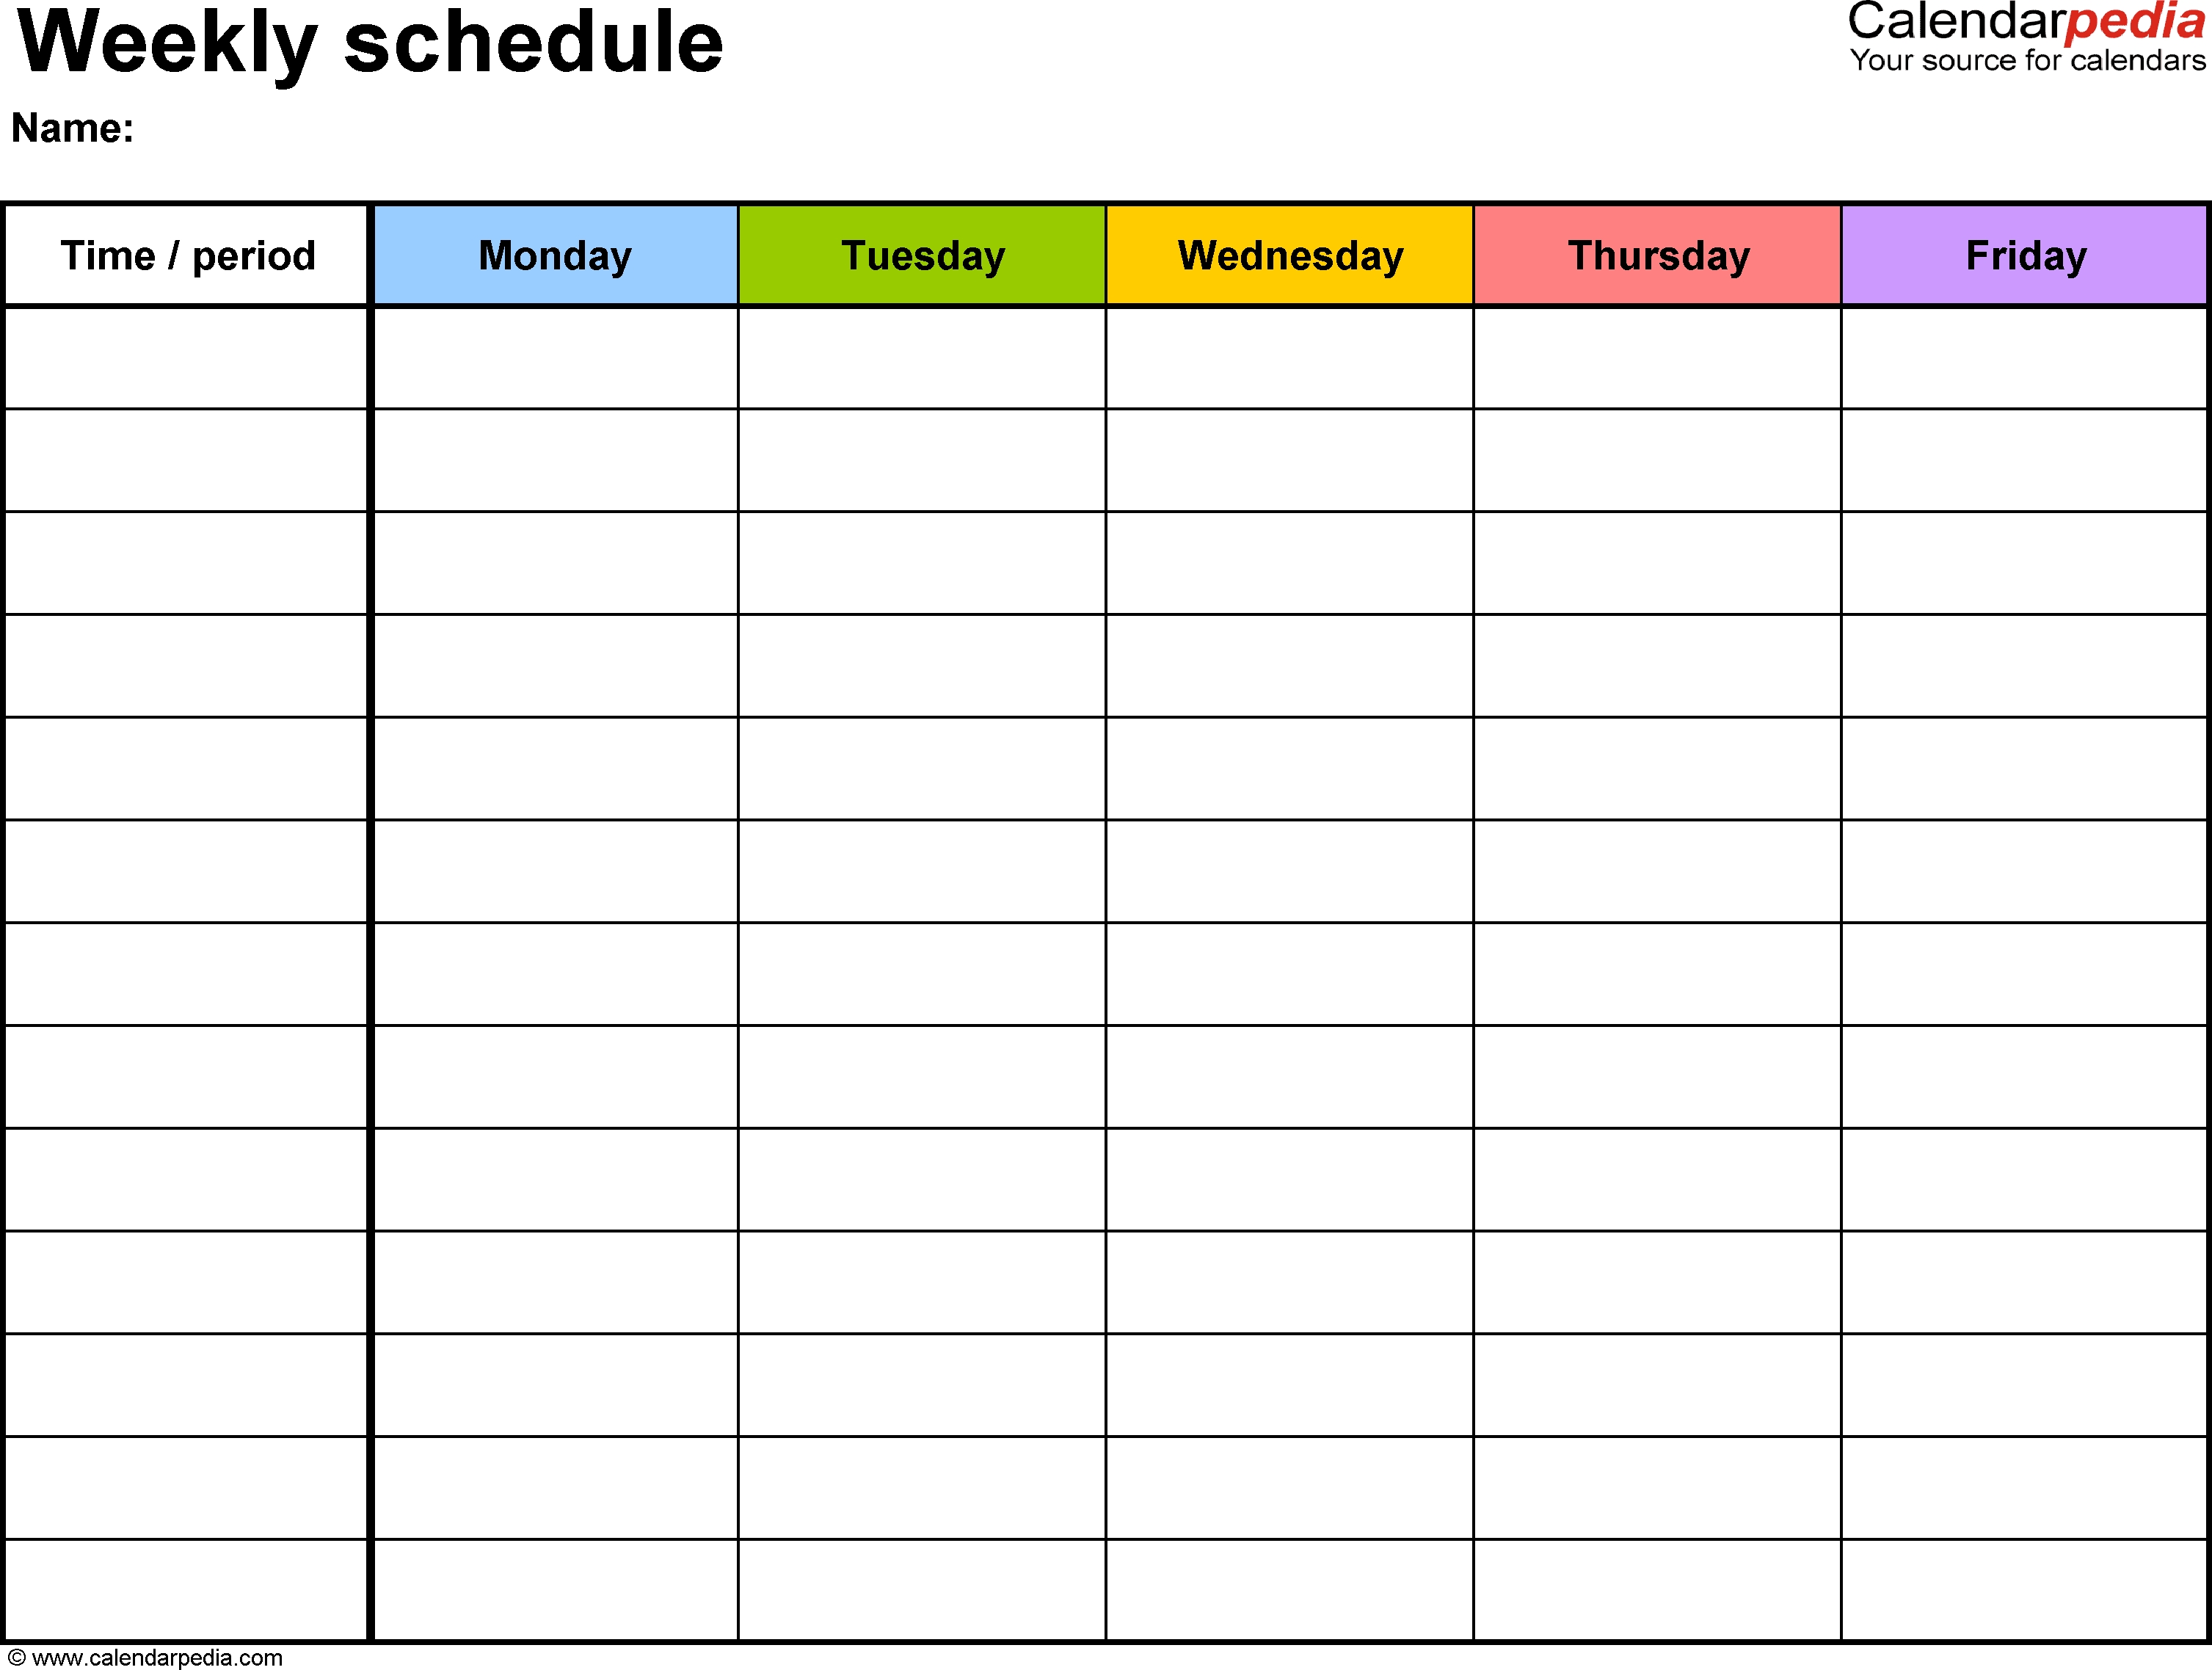 Free Weekly Schedule Templates For Word With Times Template Time with Printable Weekly Planner With Time Slots